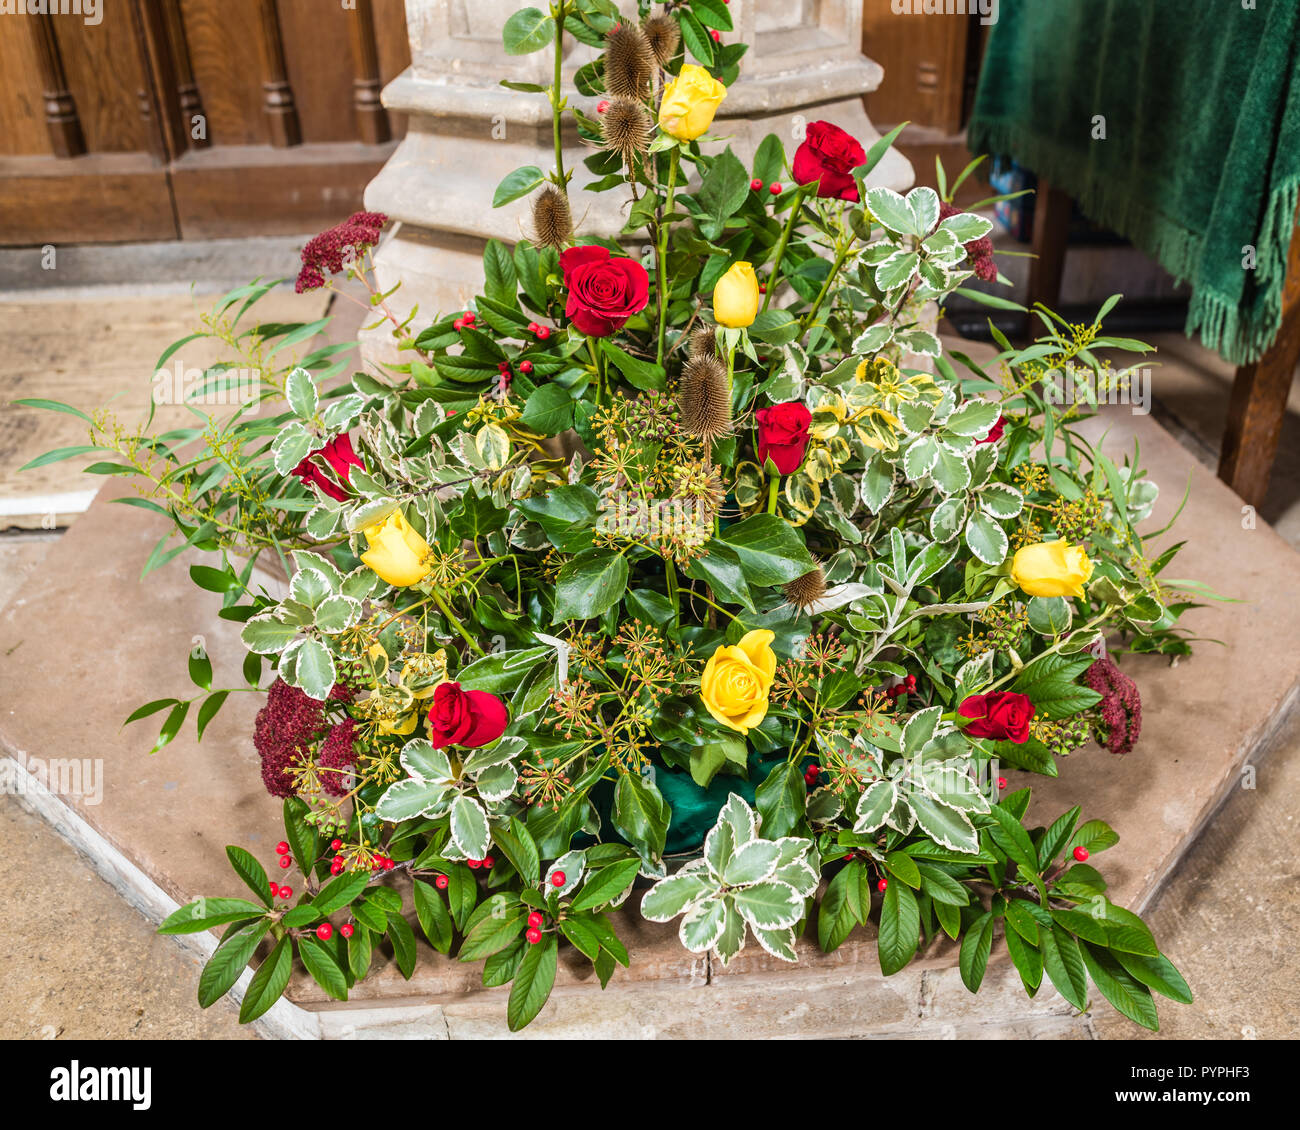 All Saints Church In East Budleigh Superb Flower Arrangements For The Anniversary Of Sir Walter Raleigh S Execution Stock Photo Alamy